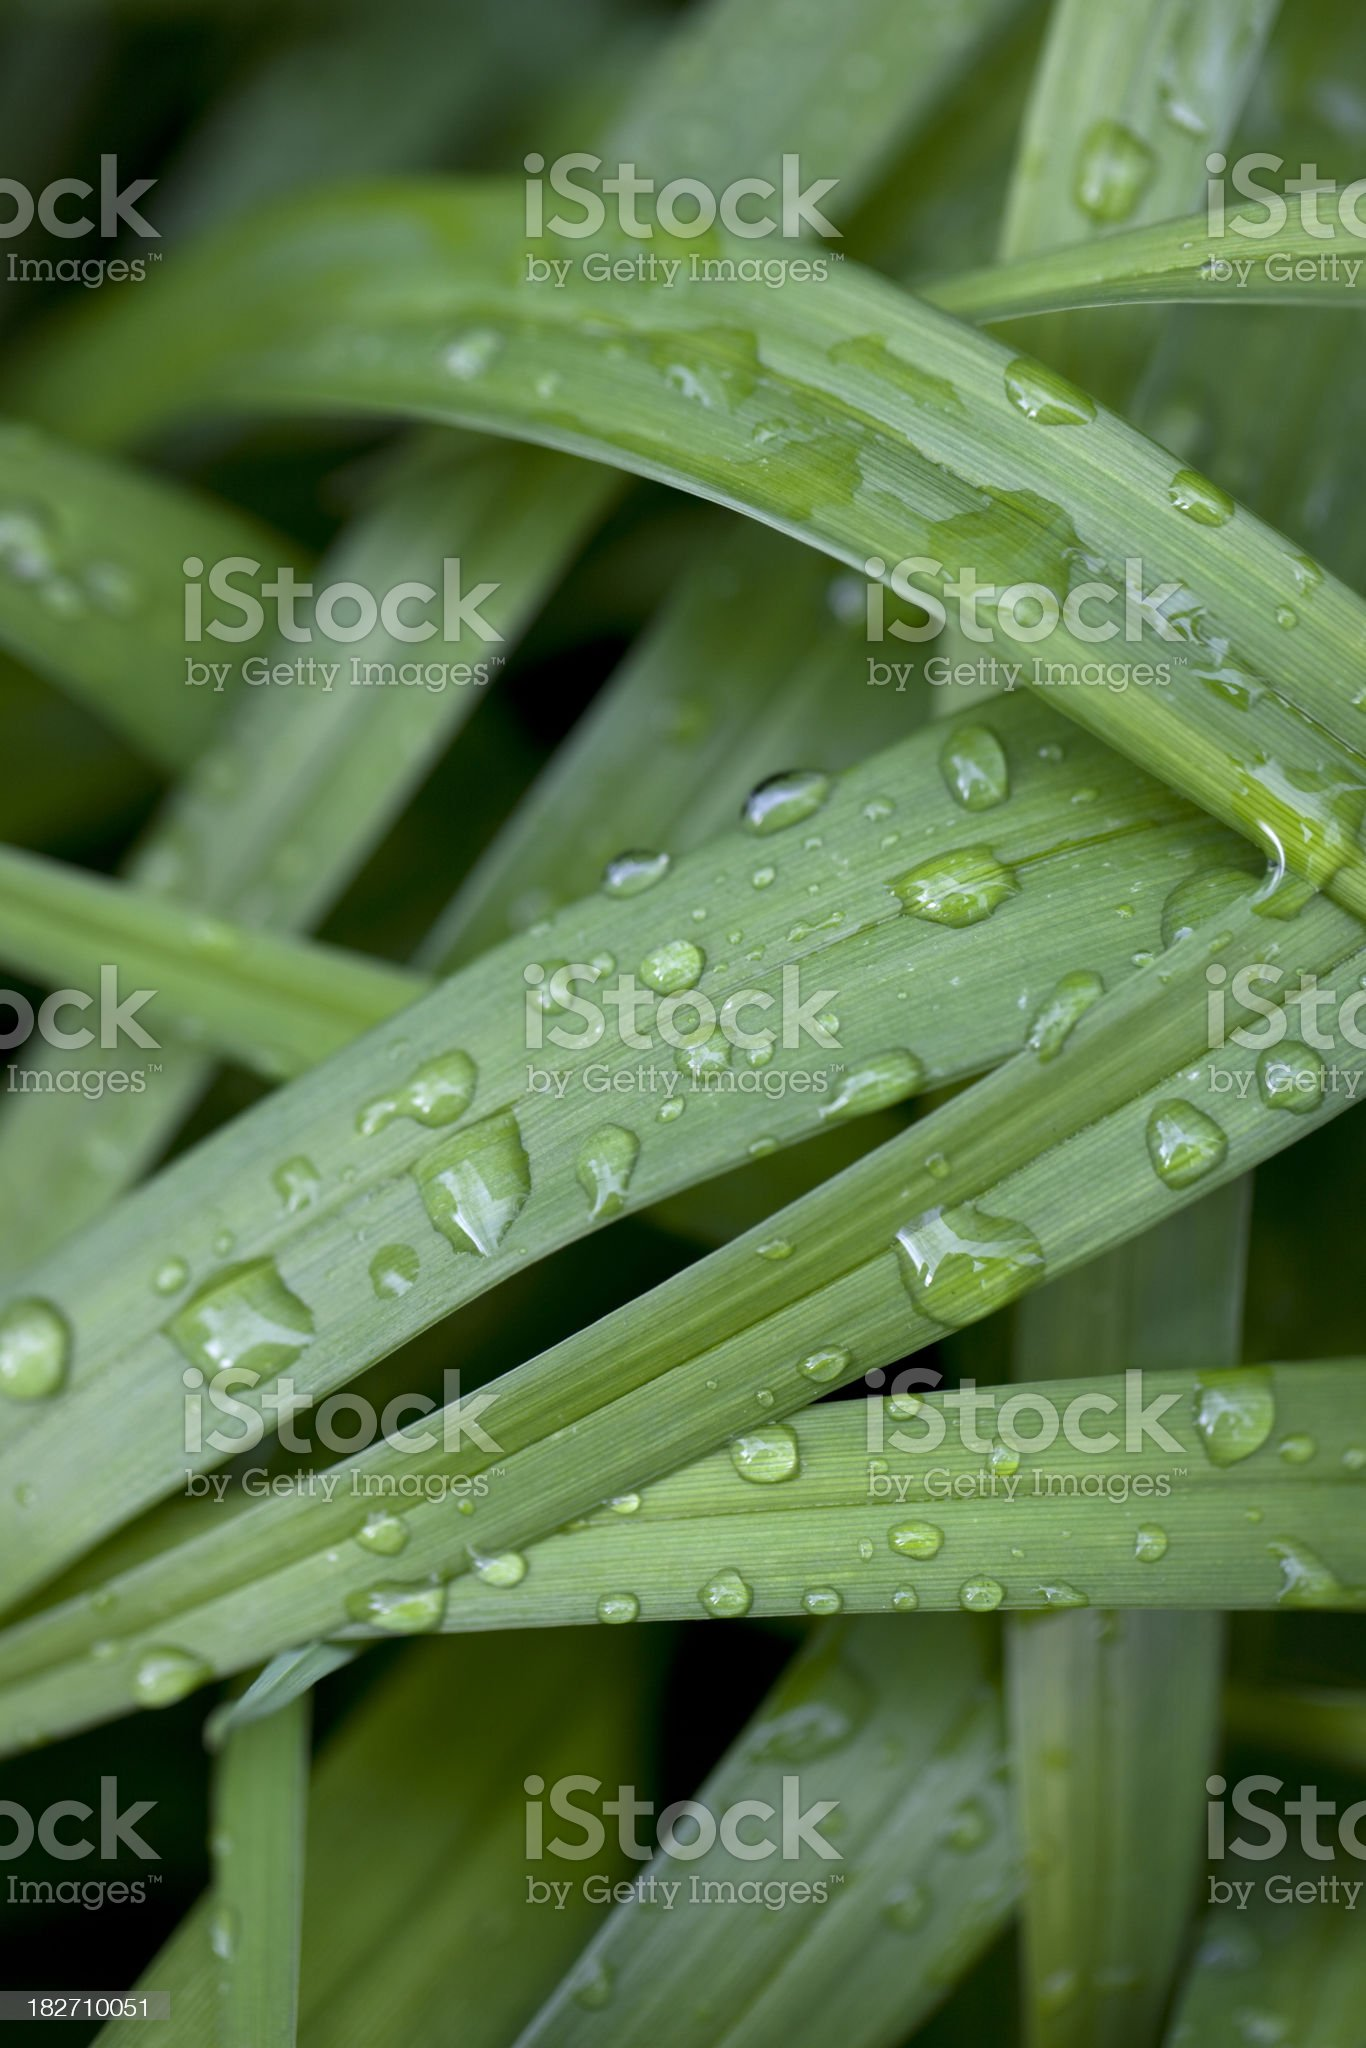 Layered Grass royalty-free stock photo